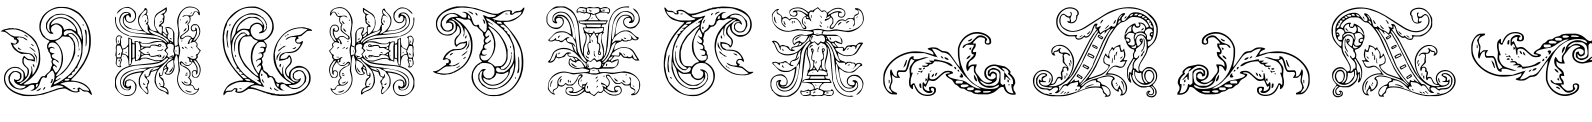 Mortised Ornaments Two Font